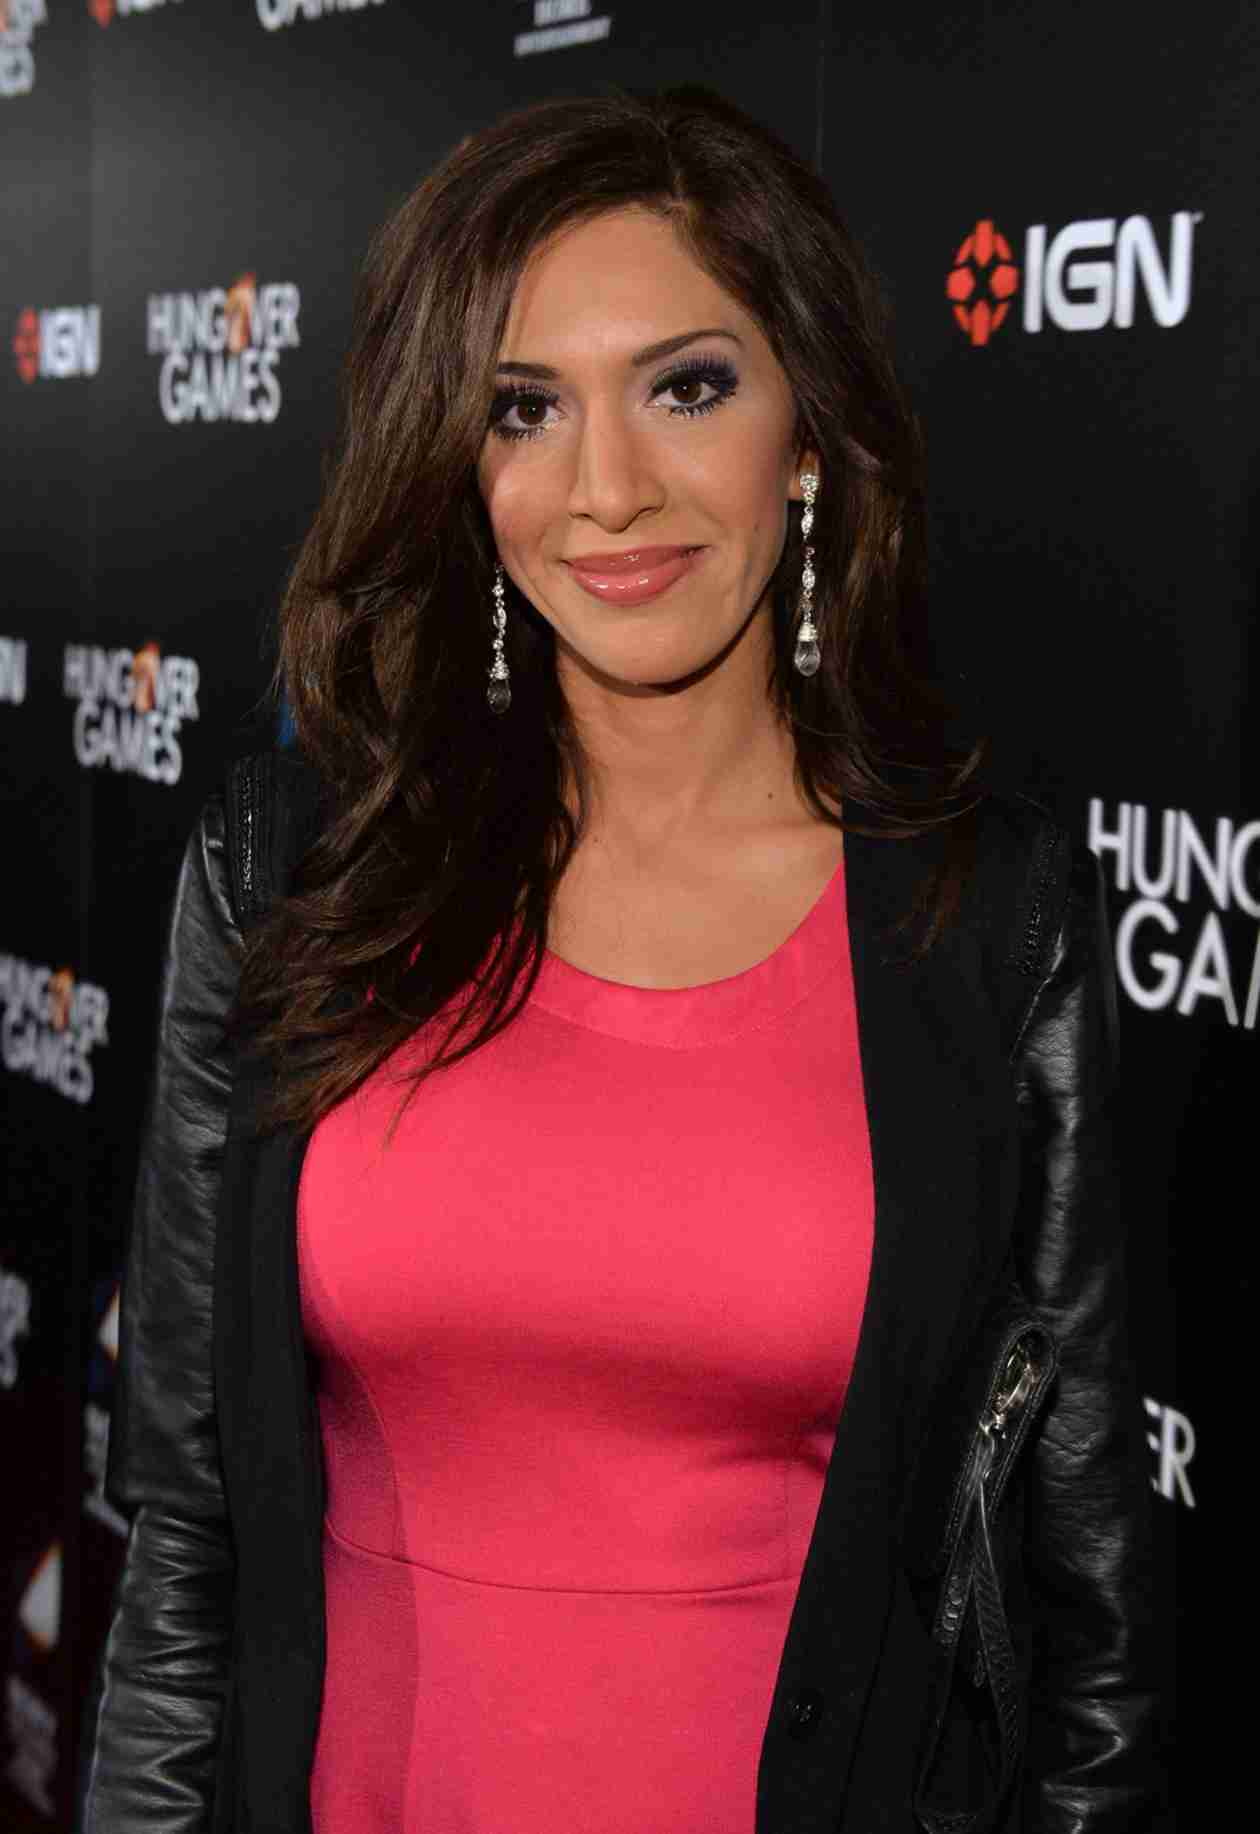 Should Farrah Abraham and Daniel Alvarez Get Back Together?